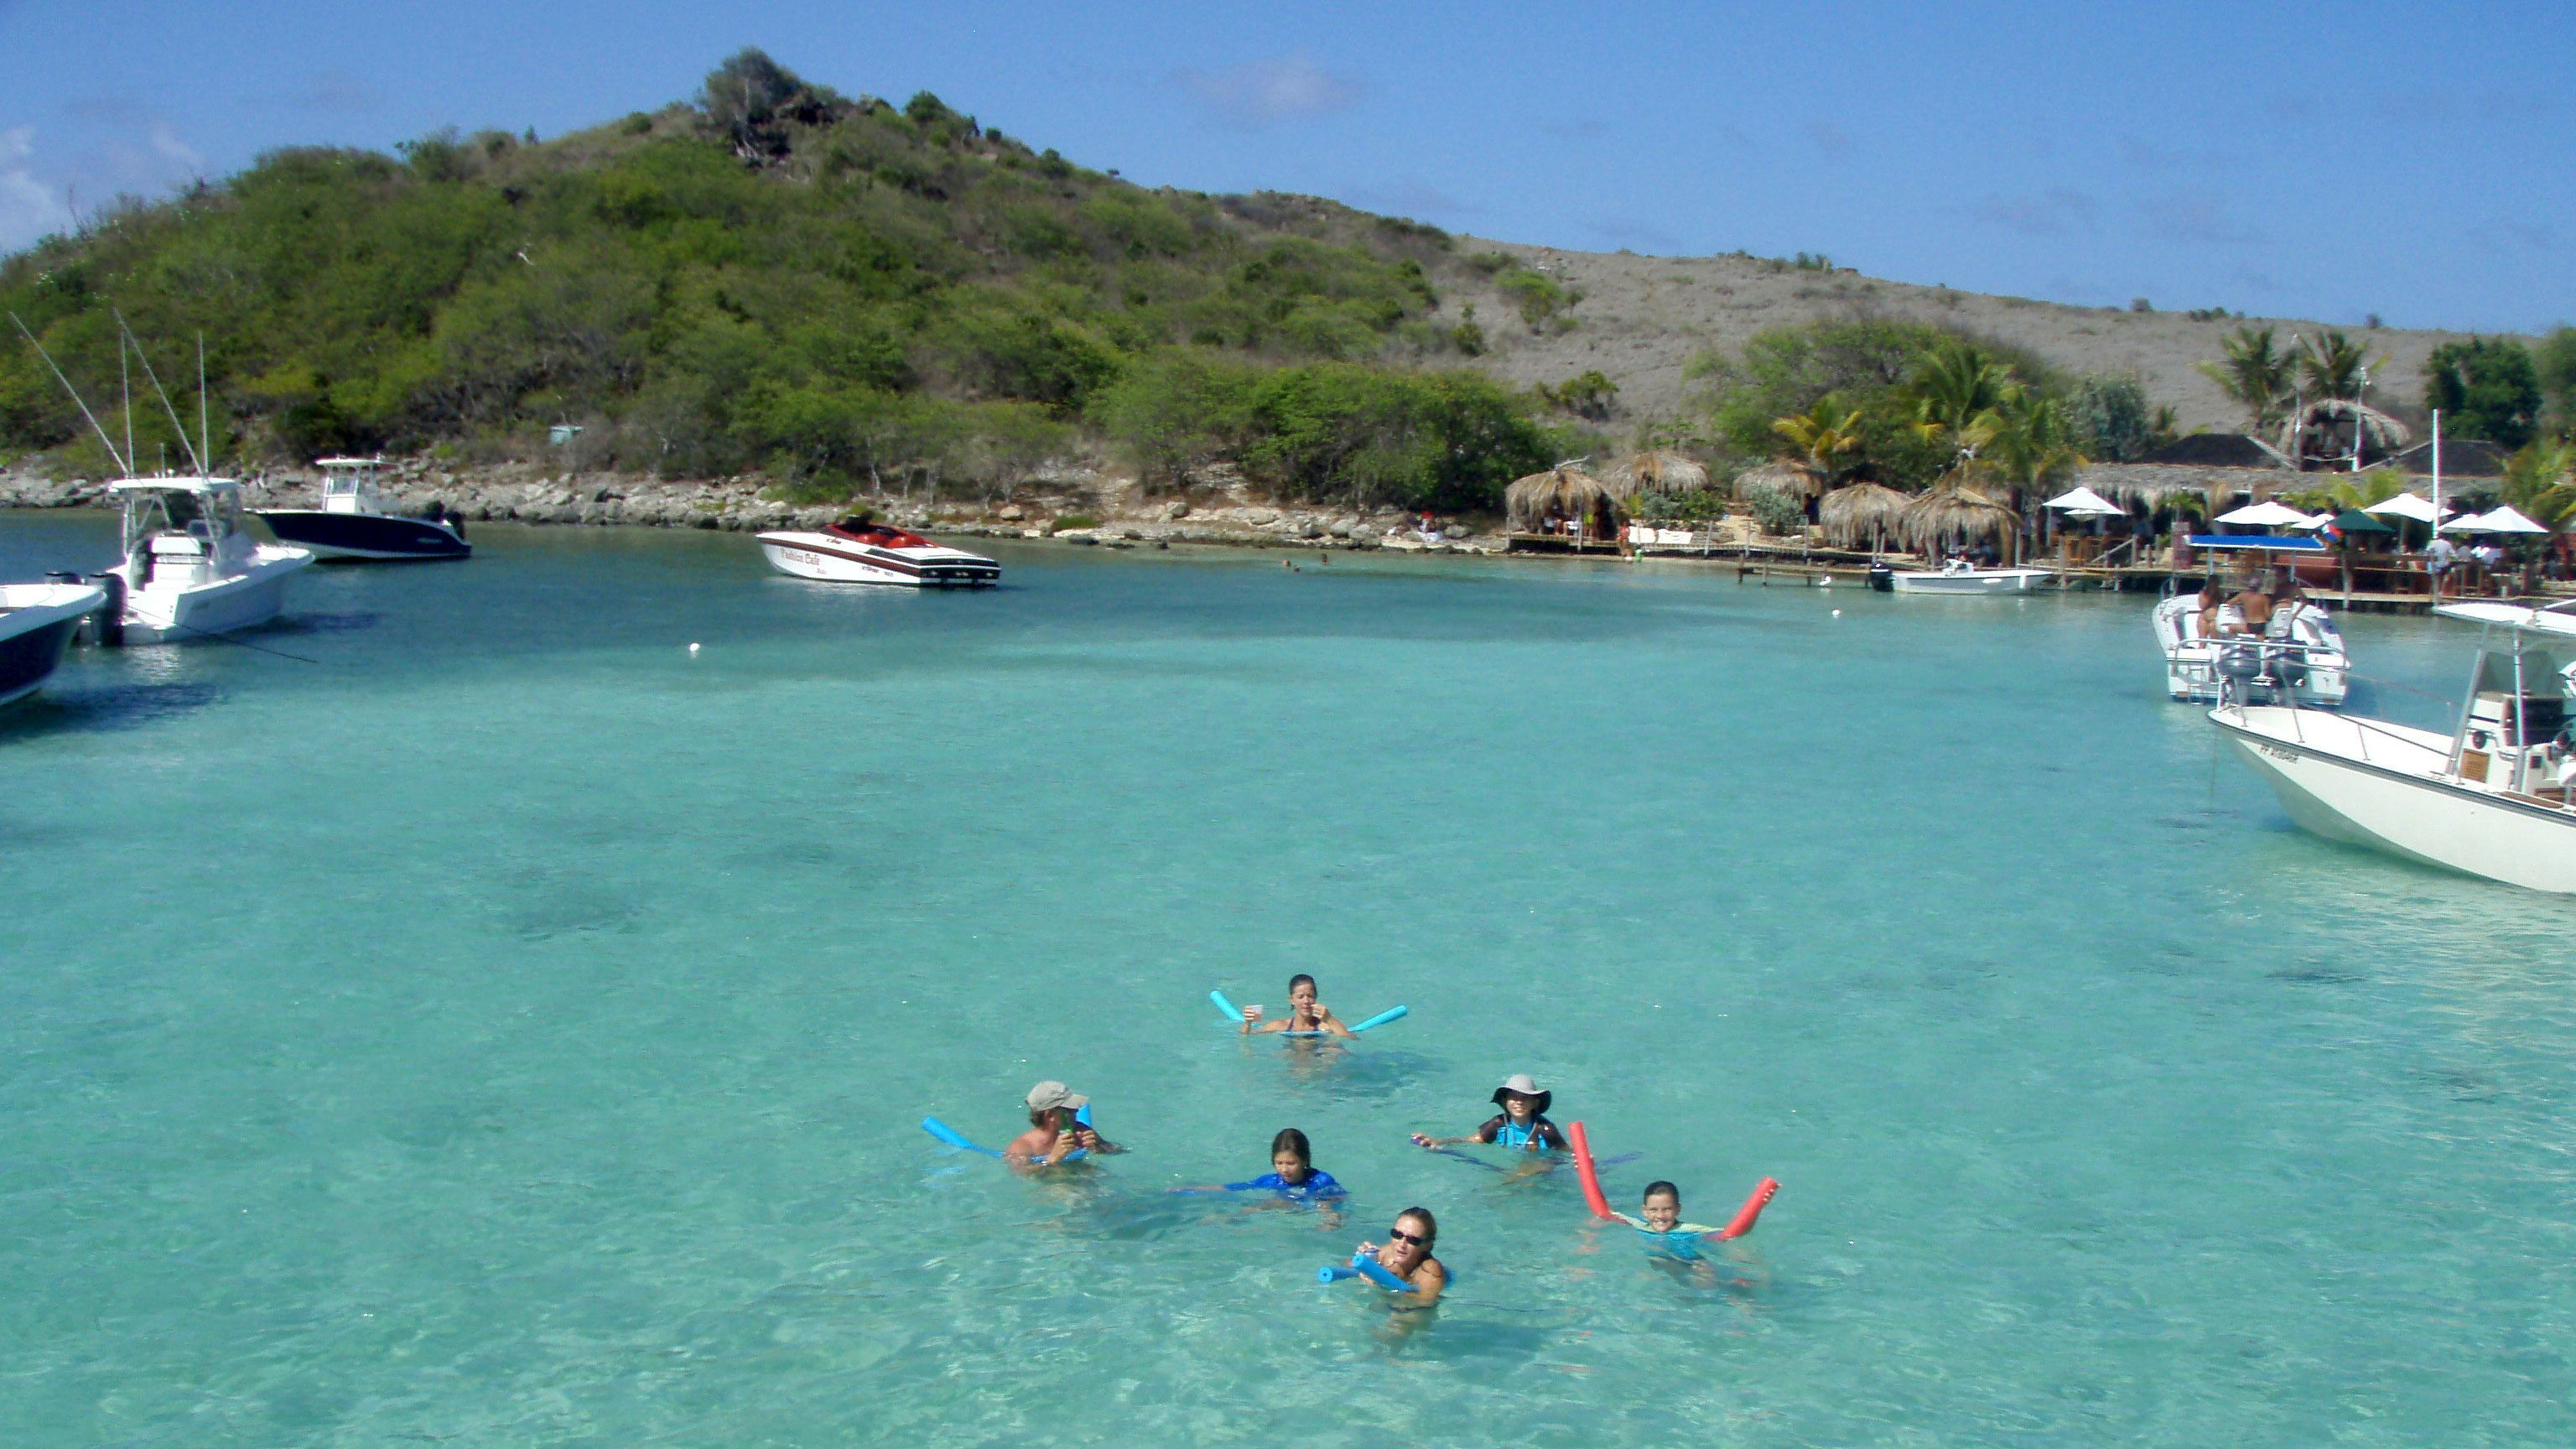 Group of tourists snorkeling off the coast of Tintamarre